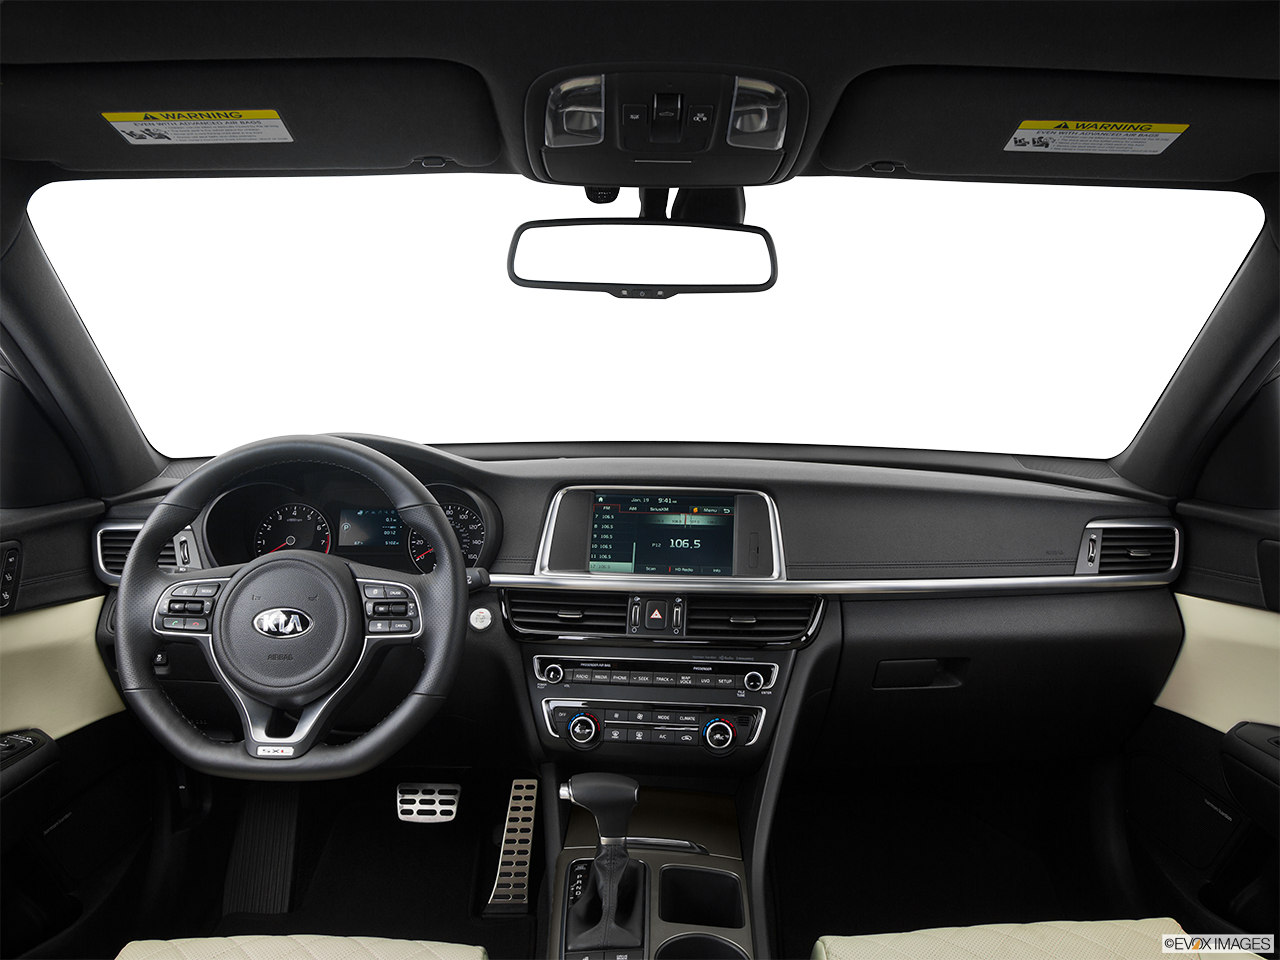 Interior view of 2017 kia k900 at kia cerritos